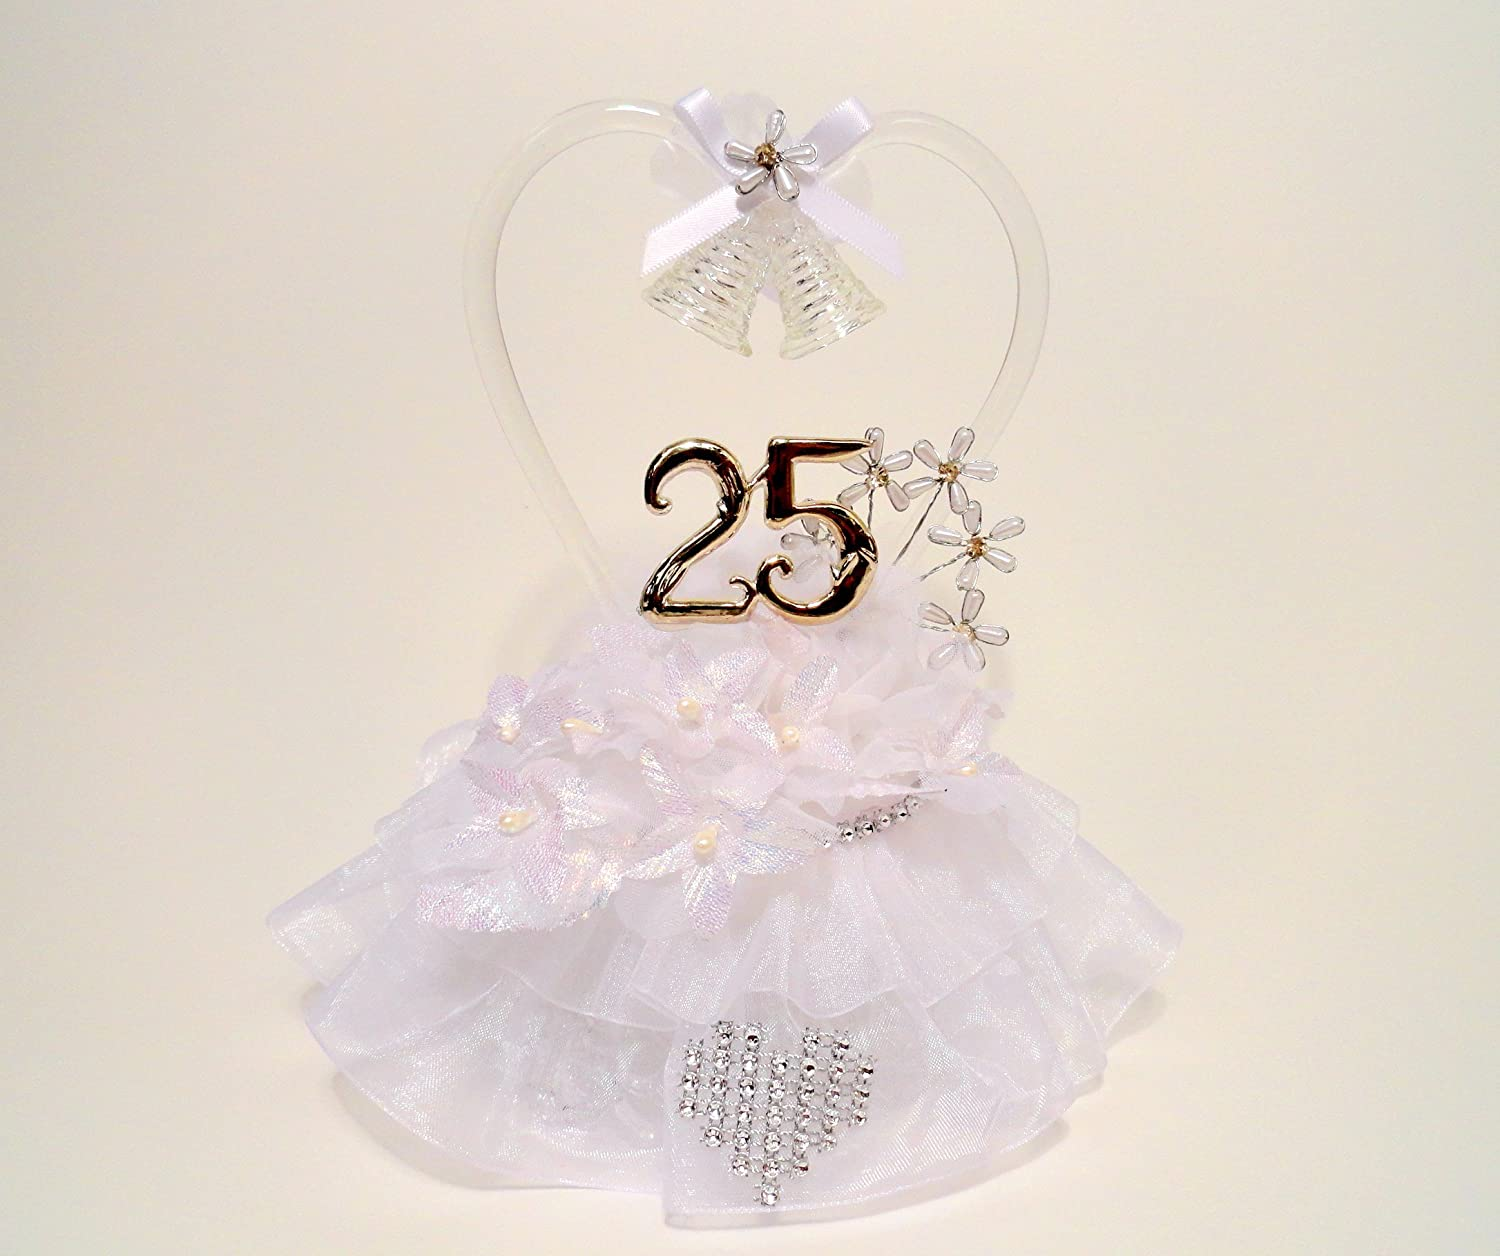 Amazon Com 25th Wedding Anniversary Cake Topper Or Table Decoration Crystal Heart And Rhinestone Accents 8600 Kitchen Dining